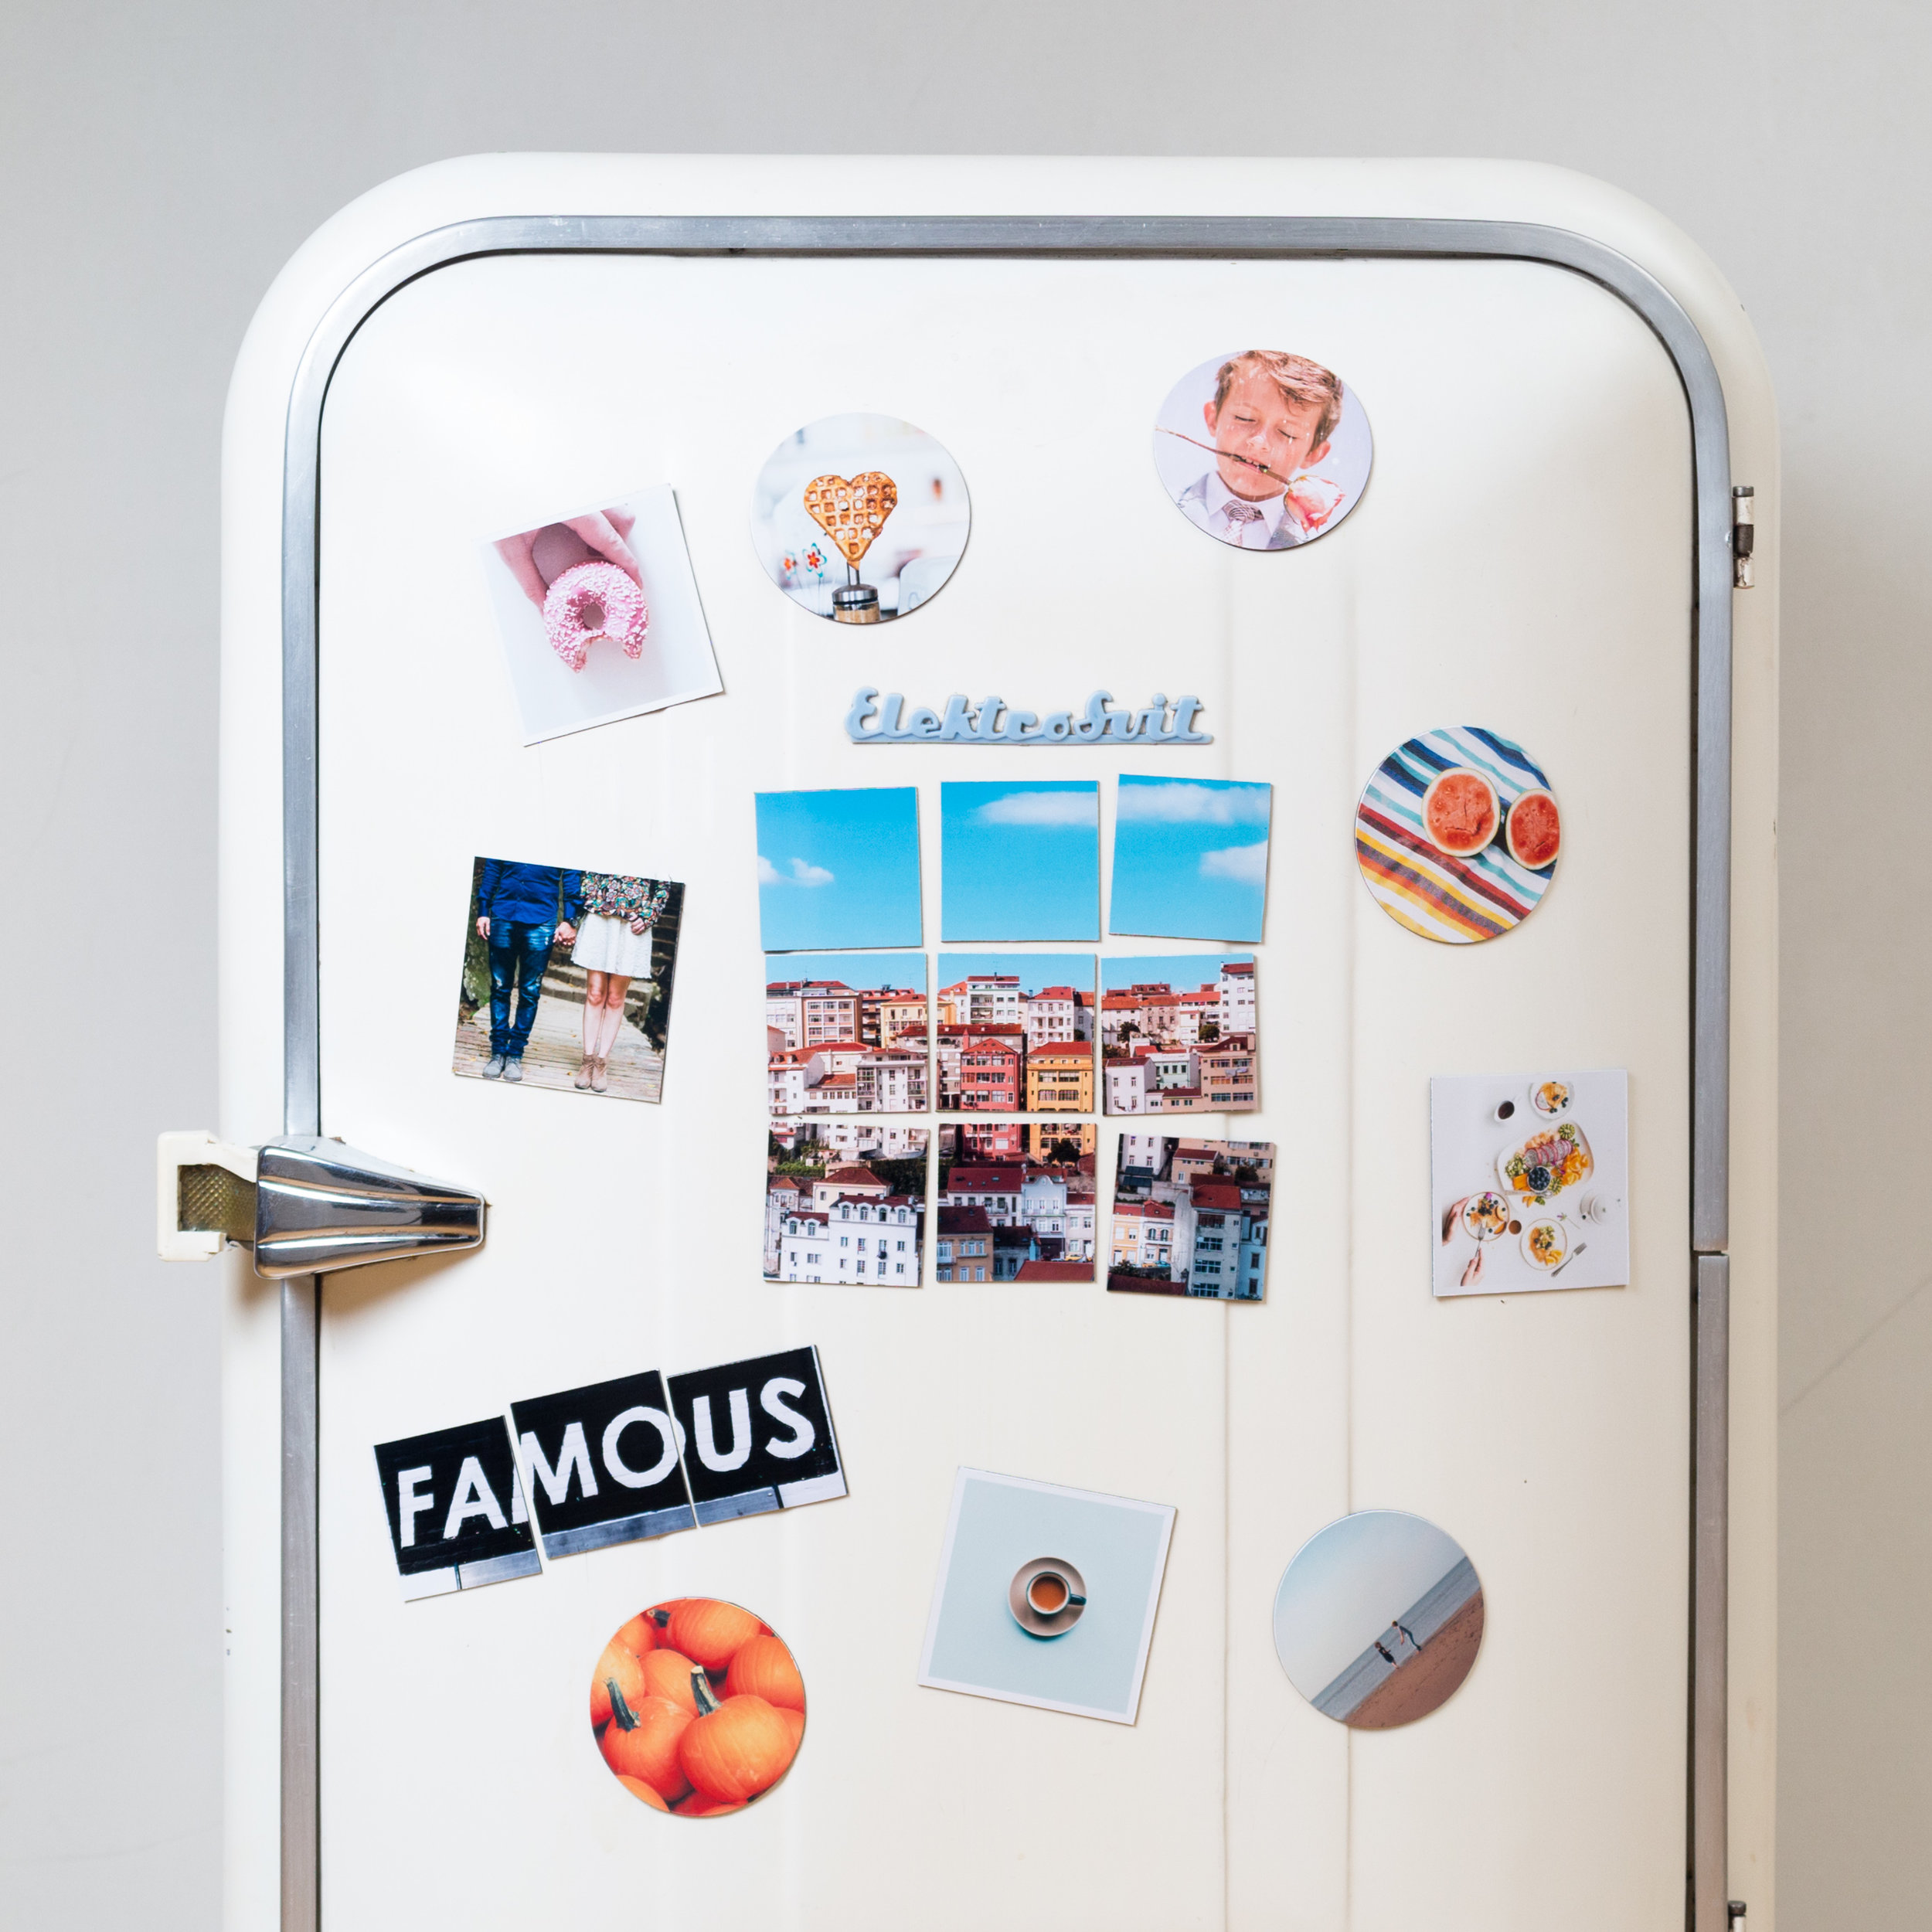 A refrigerator with lots of magnets on